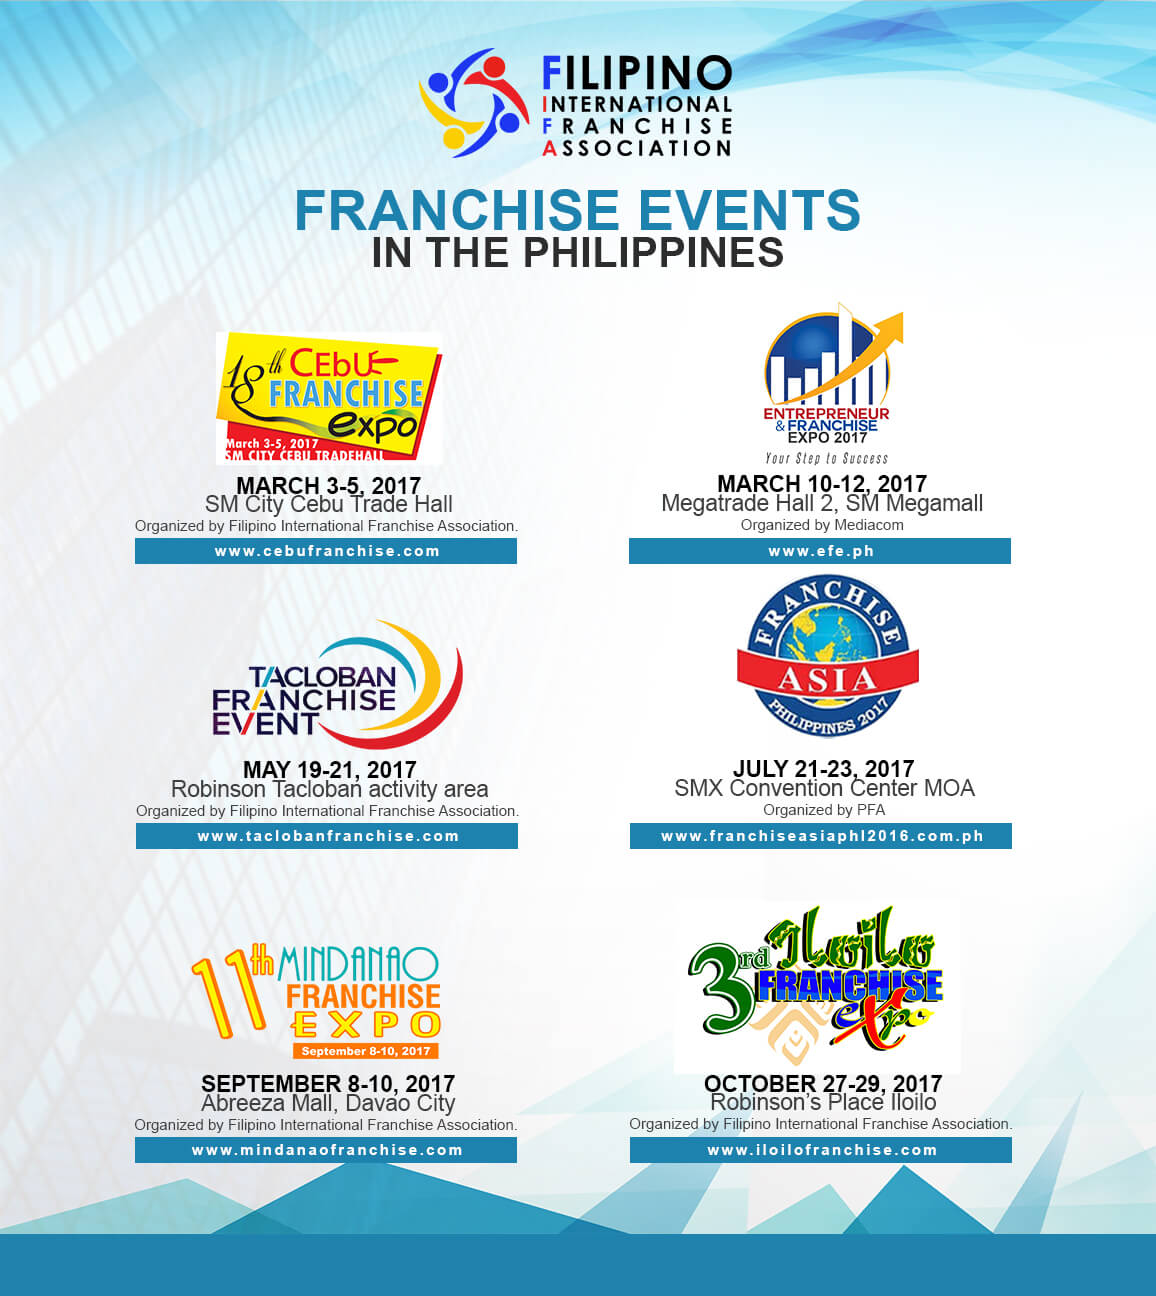 11th MINDANAO FRANCHISE EXPO